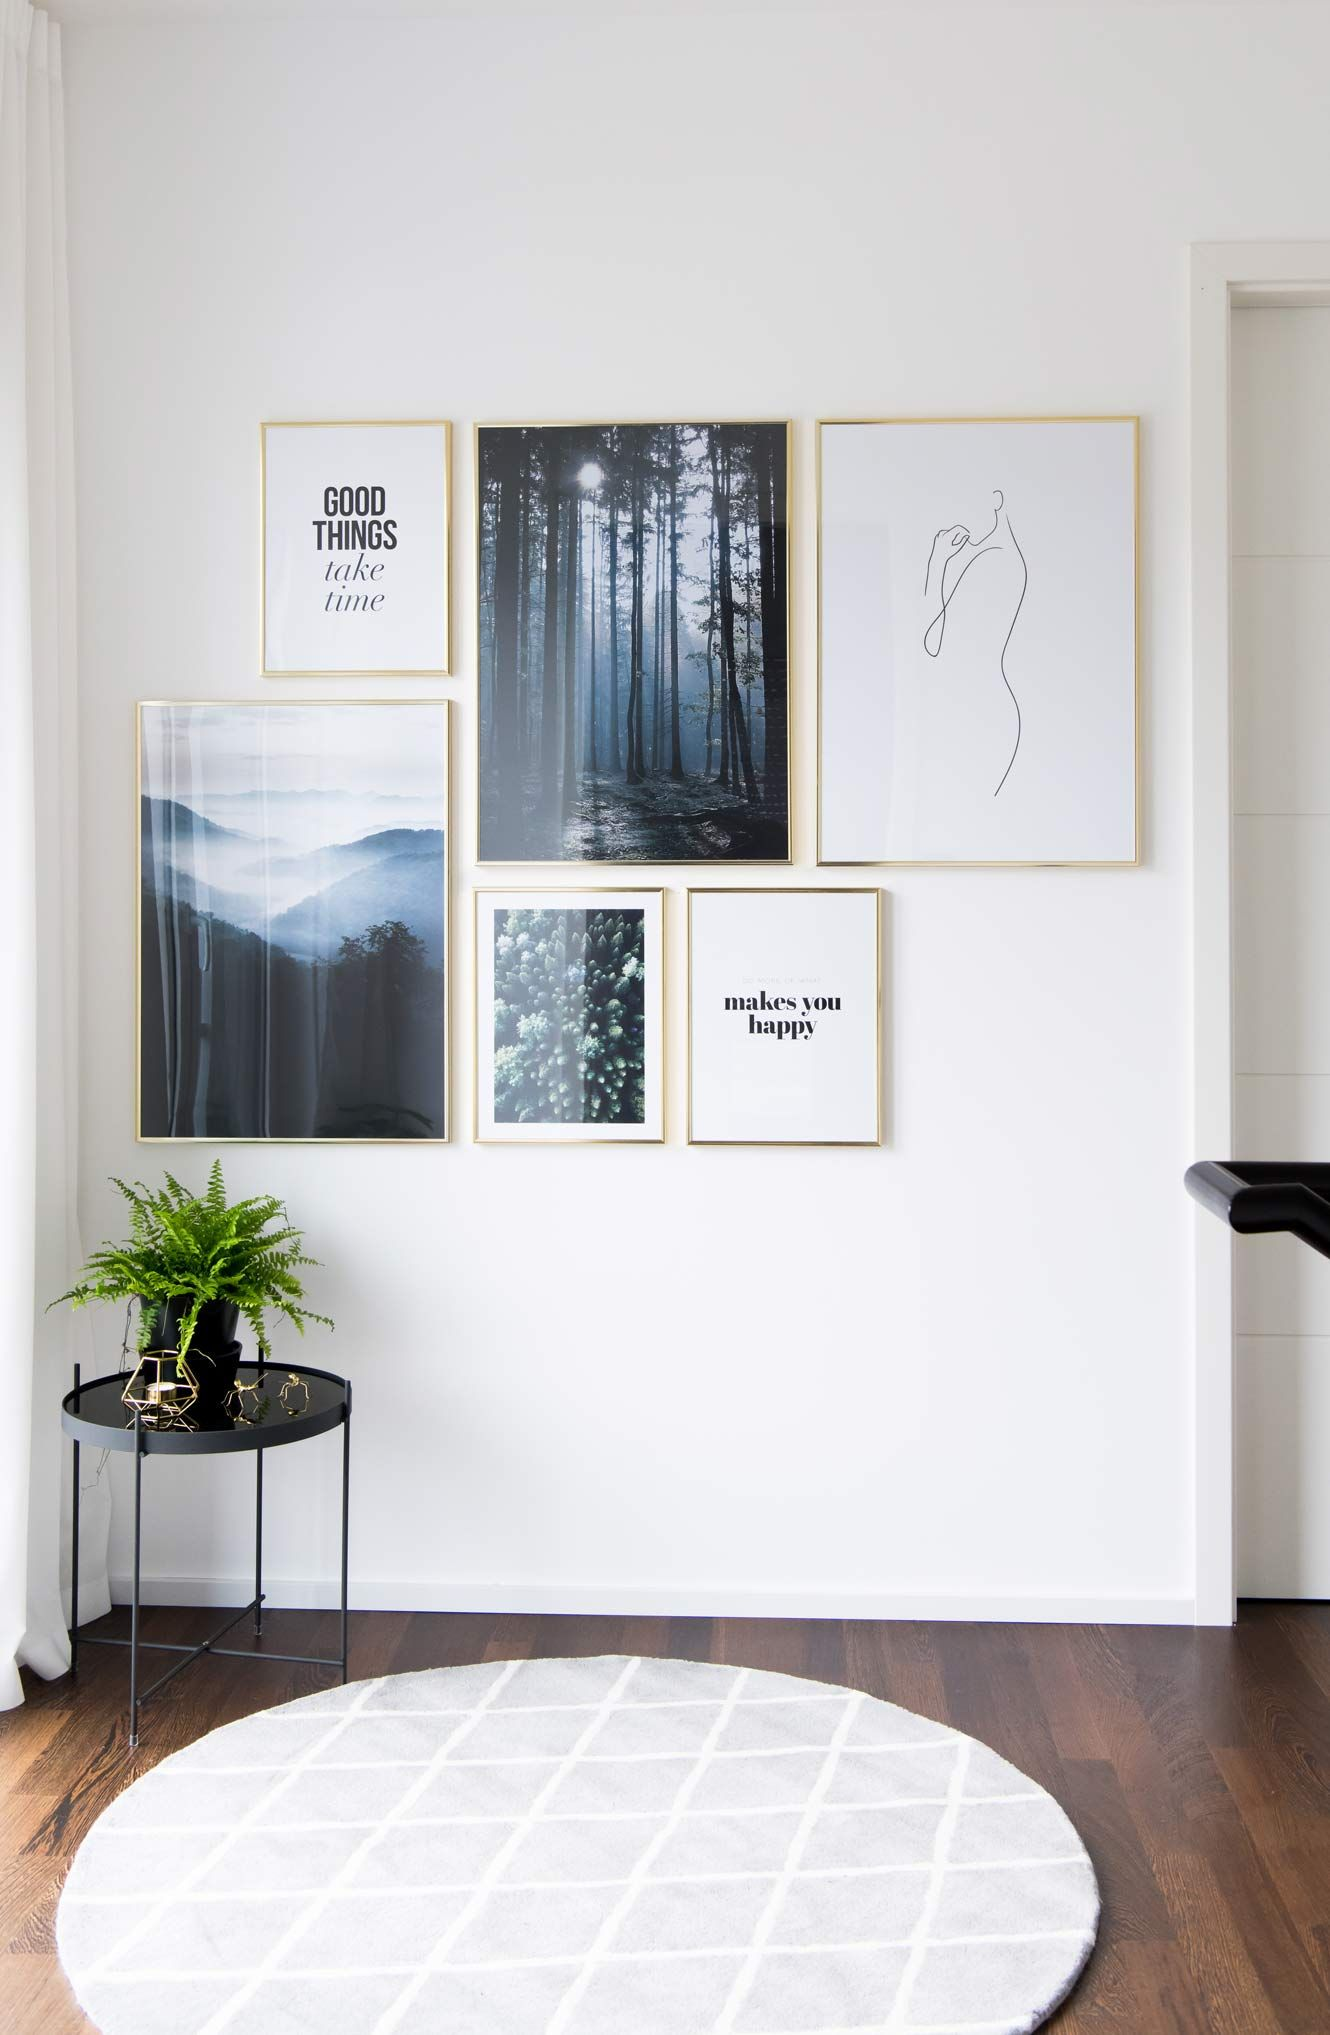 Neue Bilderwand im Flur – Soul follows design